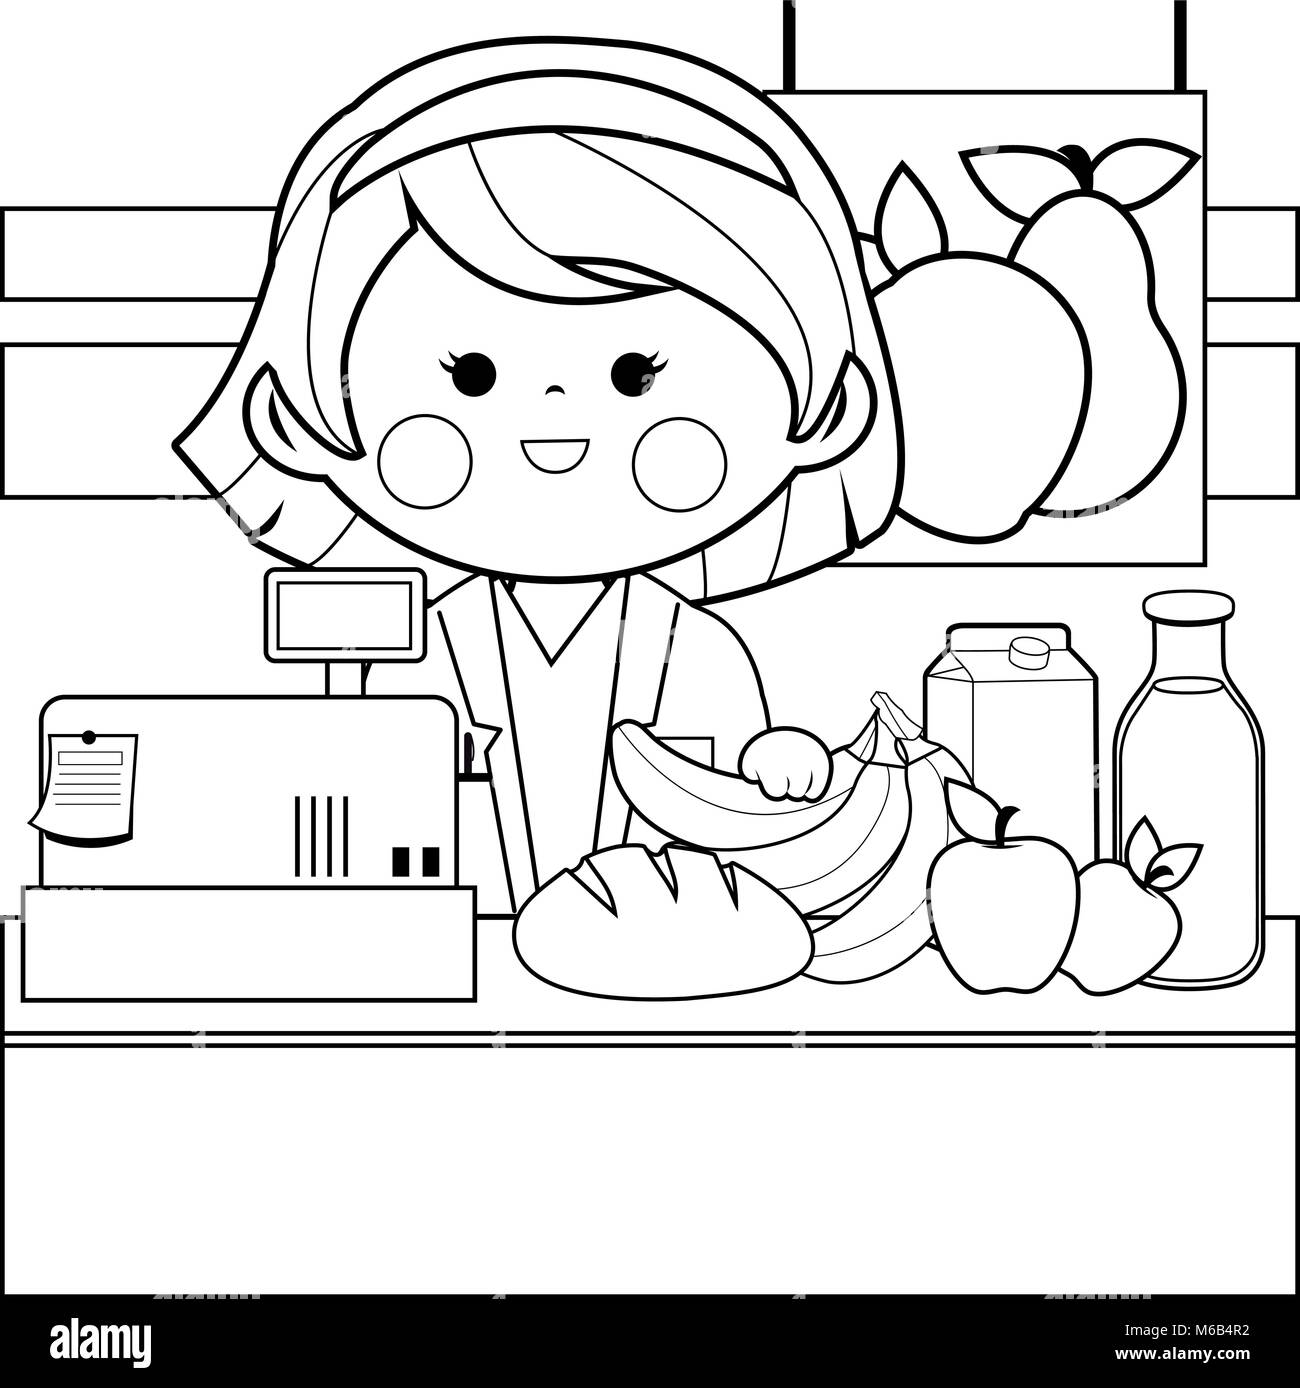 Grocery store employee at the counter. Black and white coloring book ...